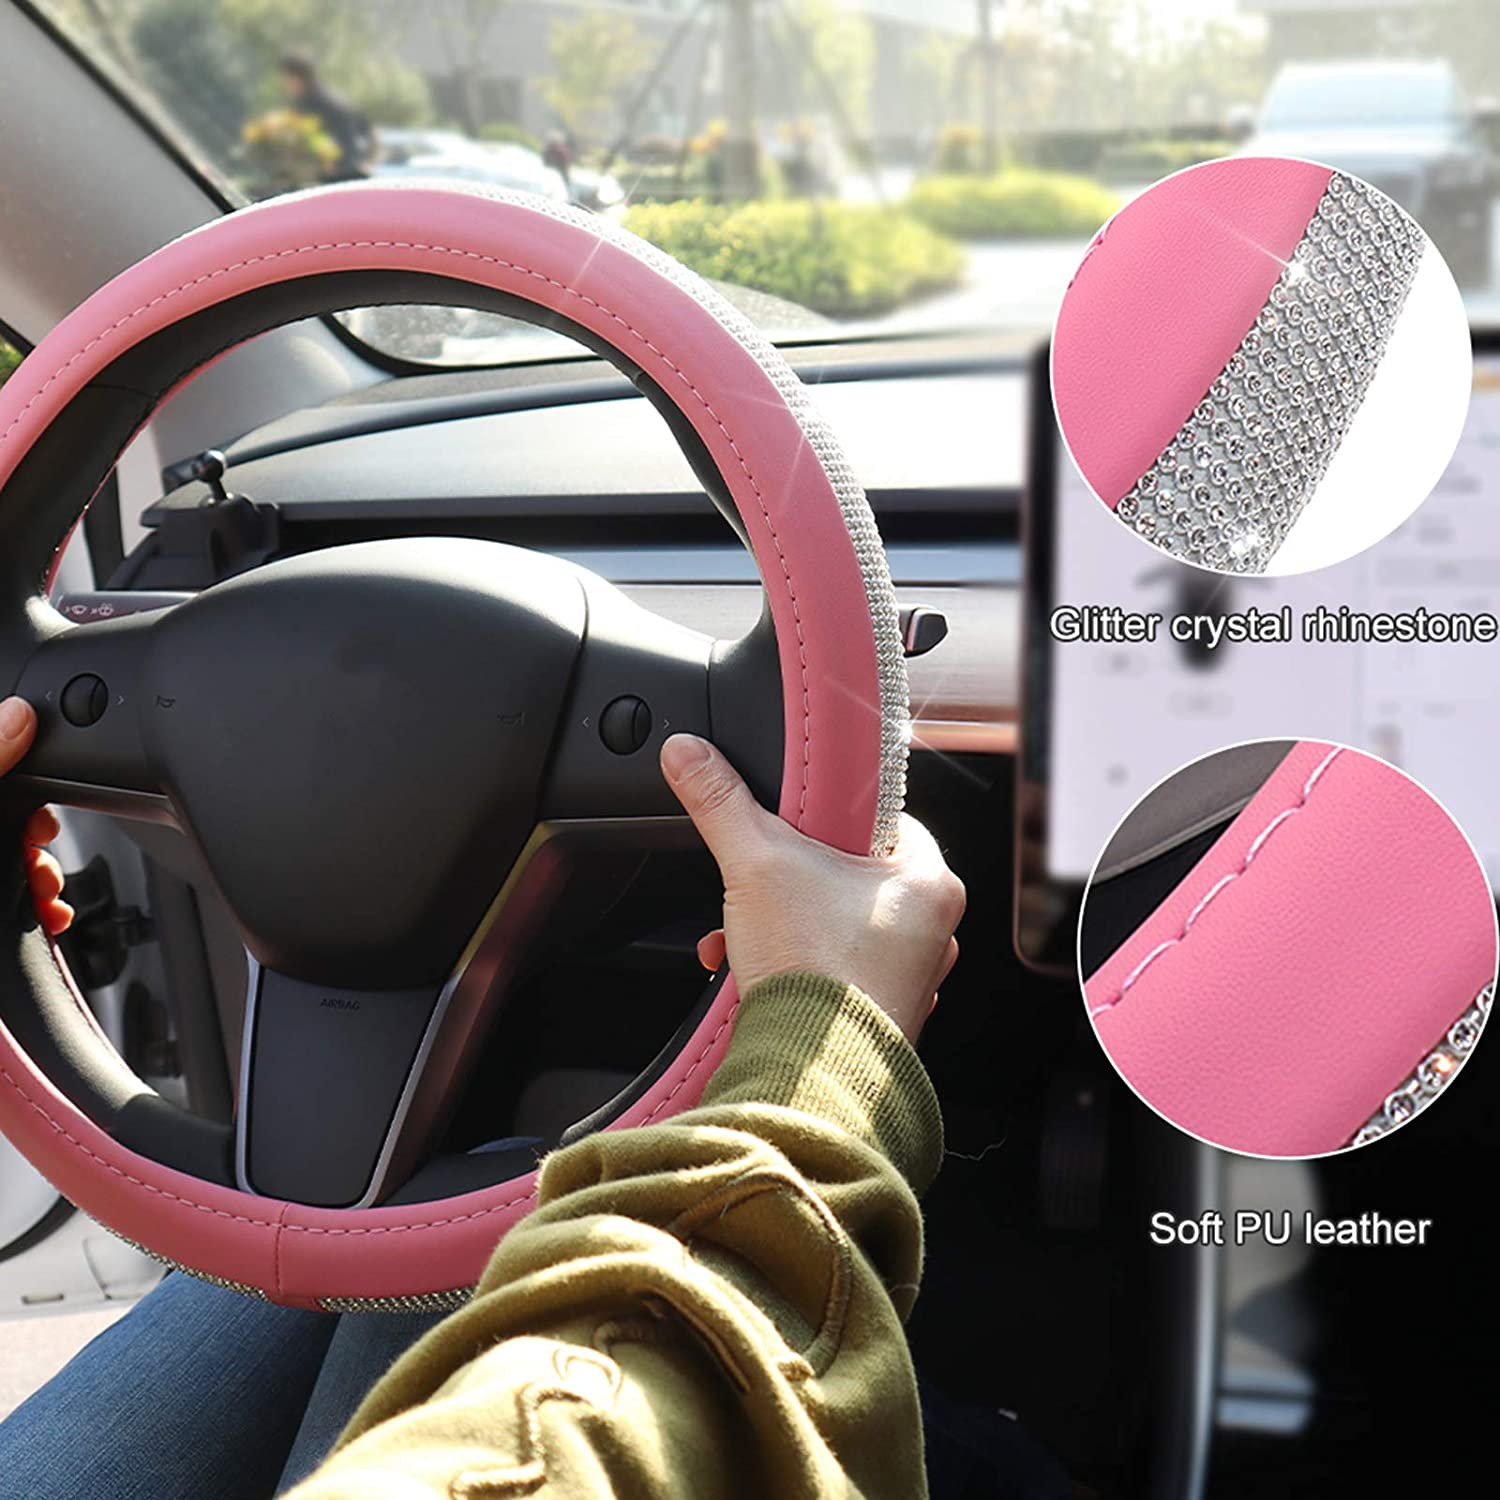 Pink Vacallity Diamond Leather Steering Wheel Cover Universal Fit 15 Inch with Bling Bling Crystal Rhinestones for Women and Girls Car Accessories